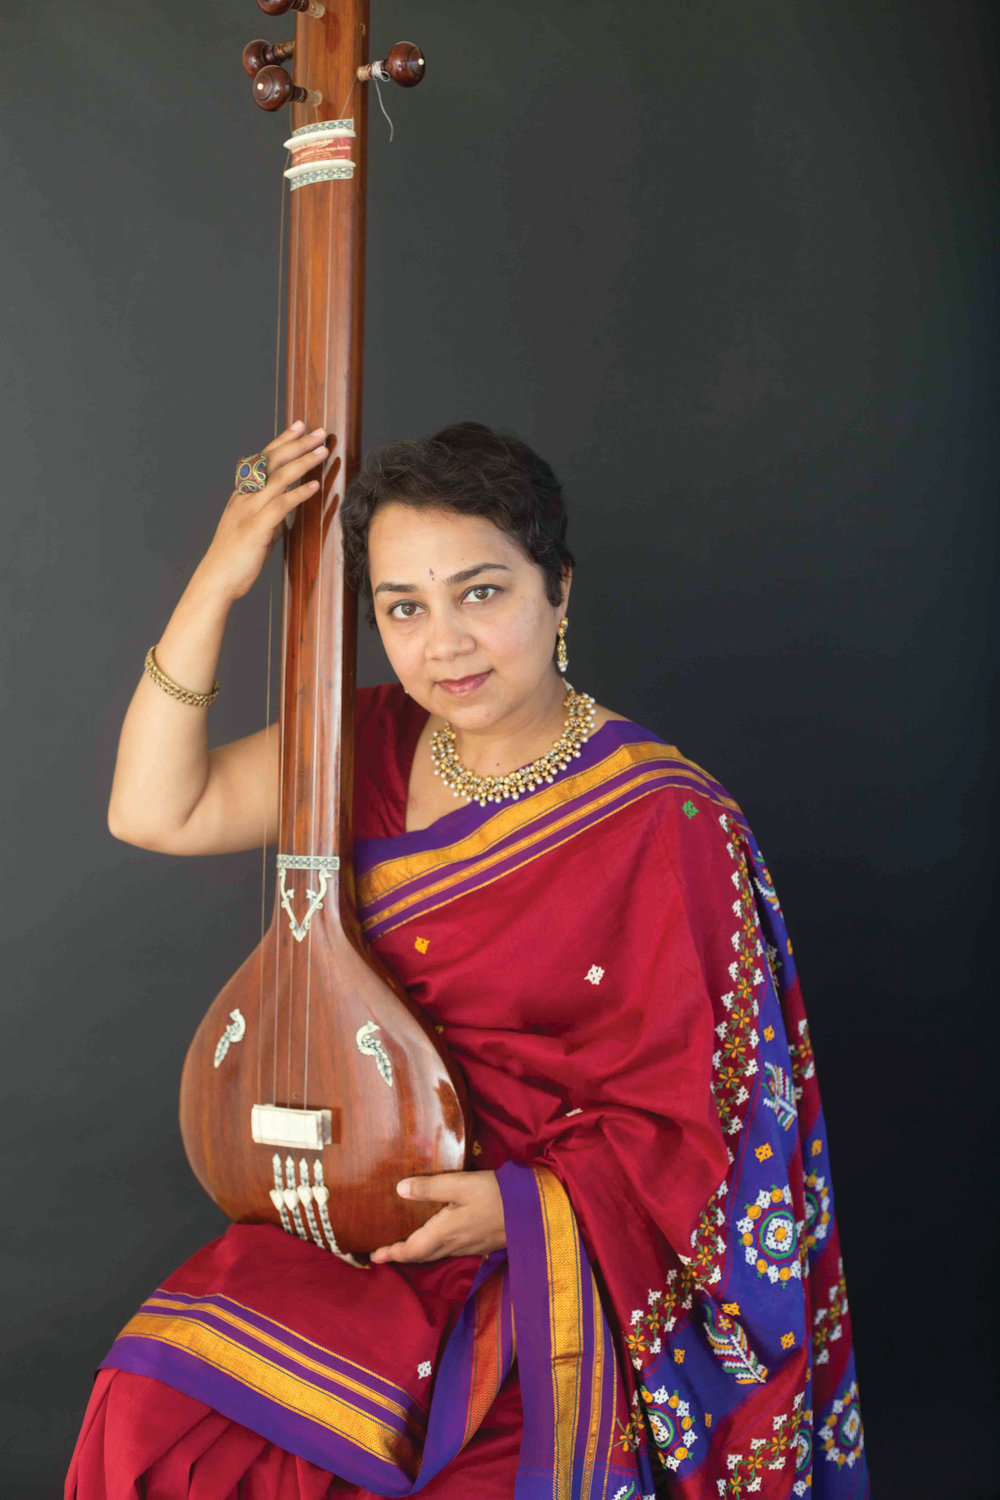 Hindustani vocalist, composer and world musician Srivani Jade will speak and perform at the Joseph F. Wheeler Theater at Fort Worden State Park at 5:30 p.m. on Monday, March 9.